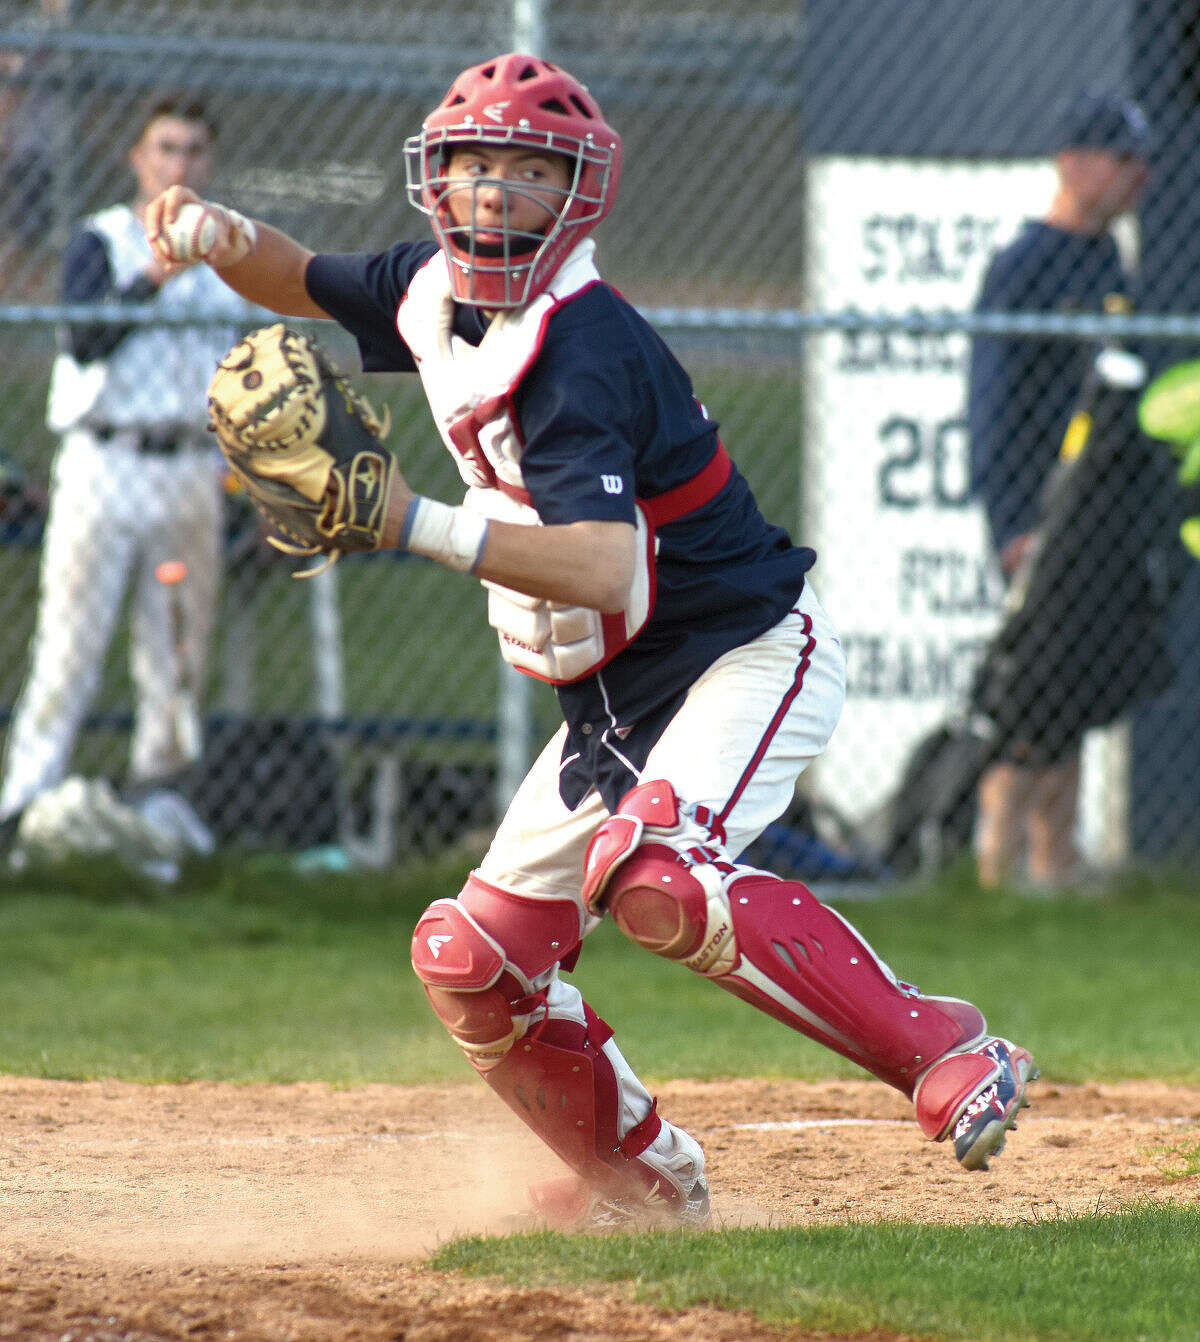 Hour photo/John Nash - McMahon catcher Hunter Dumas comes up firing after receiving the ball at the plate after Staples scored a run in the Wreckers 11-0 win over Brien McMahon.